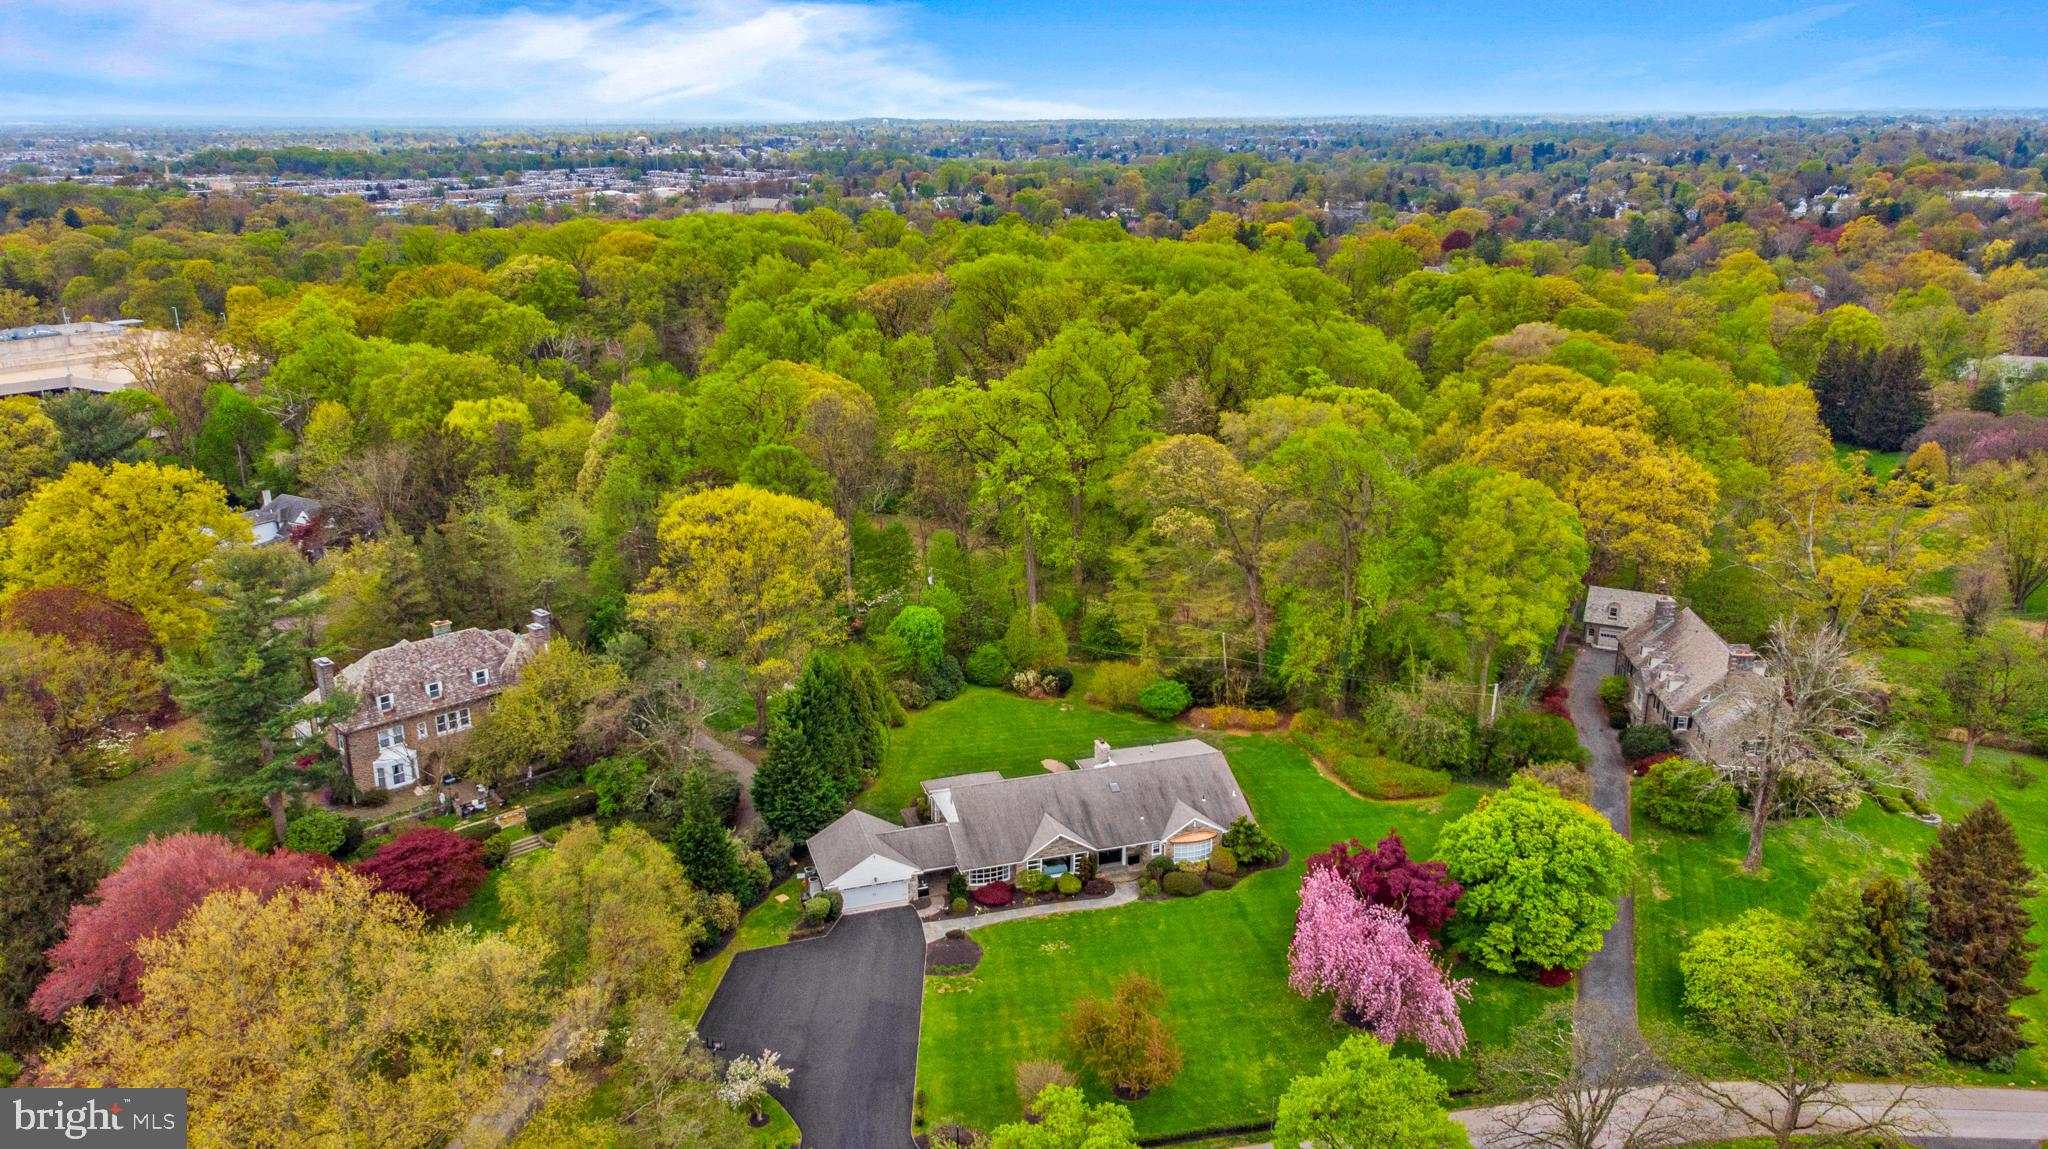 Sunday, 5/2, OPEN HOUSE CANCELLED.   Do you want the best house with the best yard in the best location?  Look no further.   Completely renovated between 2017 – 2021, no expense was spared to optimize the style and function of this beautiful stone Cape Cod home.  Ideally situated on over 1.17 acres of park-like land with private access to the Lankenau walking trail, this property offers  privacy within a neighborhood that is walkable to shopping, places of worship and commuter rail.  Step through the front door and into the entry foyer and you will notice that the beauty of the grounds  is brought indoors through many large windows and doorways.   High ceilings and hardwood floors throughout the house highlight the large spaces and open floorplan.   From the foyer with coat closet and powder room, step into the dramatic Great Room with stacked stone fireplace, barreled ceiling and wall of windows.  Pella sliding doors lead to a stone patio and back yard.   This room opens to a lavish gourmet kitchen featuring Italian Carrera Bianco marble countertops and island as well as custom designed, soft-close cabinetry and pantry.  A  Sub-Zero refrigerator/freezer, Sub-Zero beverage refrigerator, Wolf 6-burner gas range with commercial-grade Wolf vent/hood, Wolf microwave, Bosch stainless steel dishwasher and two stainless steel sinks make this kitchen both a showplace and a serious workspace.    The kitchen also has an informal dining area with door to the patio-- perfect for everyday meals.  Off the kitchen is a convenient laundry room with front loading washer and dryer.  The formal Dining Room is large enough to accommodate holiday gatherings and opens up to the formal Living Room; both rooms offer sweeping views of the front lawn from windows that nearly span the entire wall.  On the other side of the entry foyer are three generously sized bedrooms.  The  Primary Bedroom offers French doors to the back patio, his and hers walk-in closets and luxurious bath with oversized